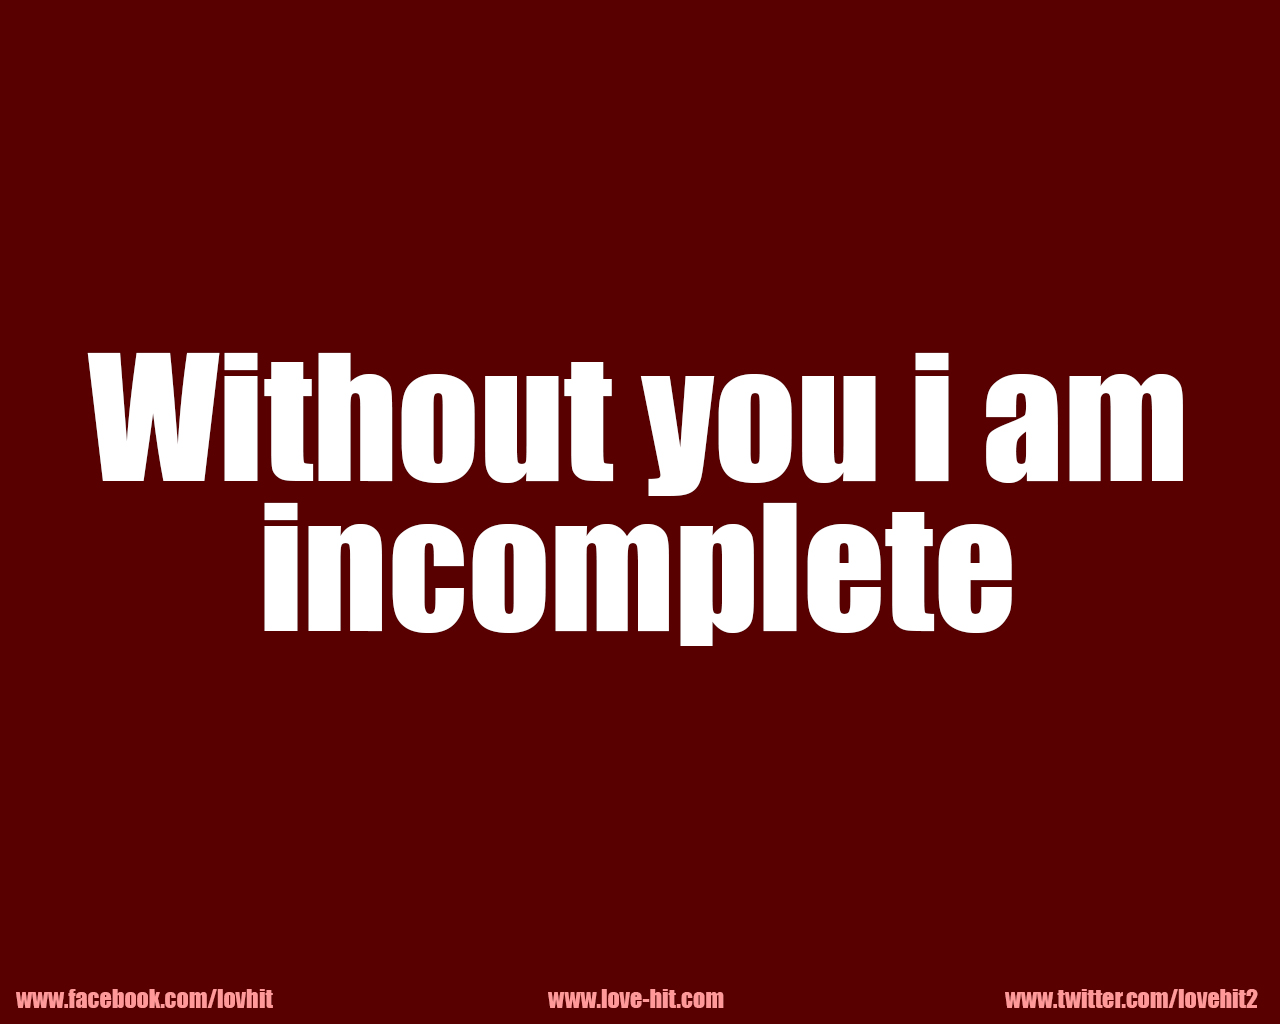 Without you i am incomplete